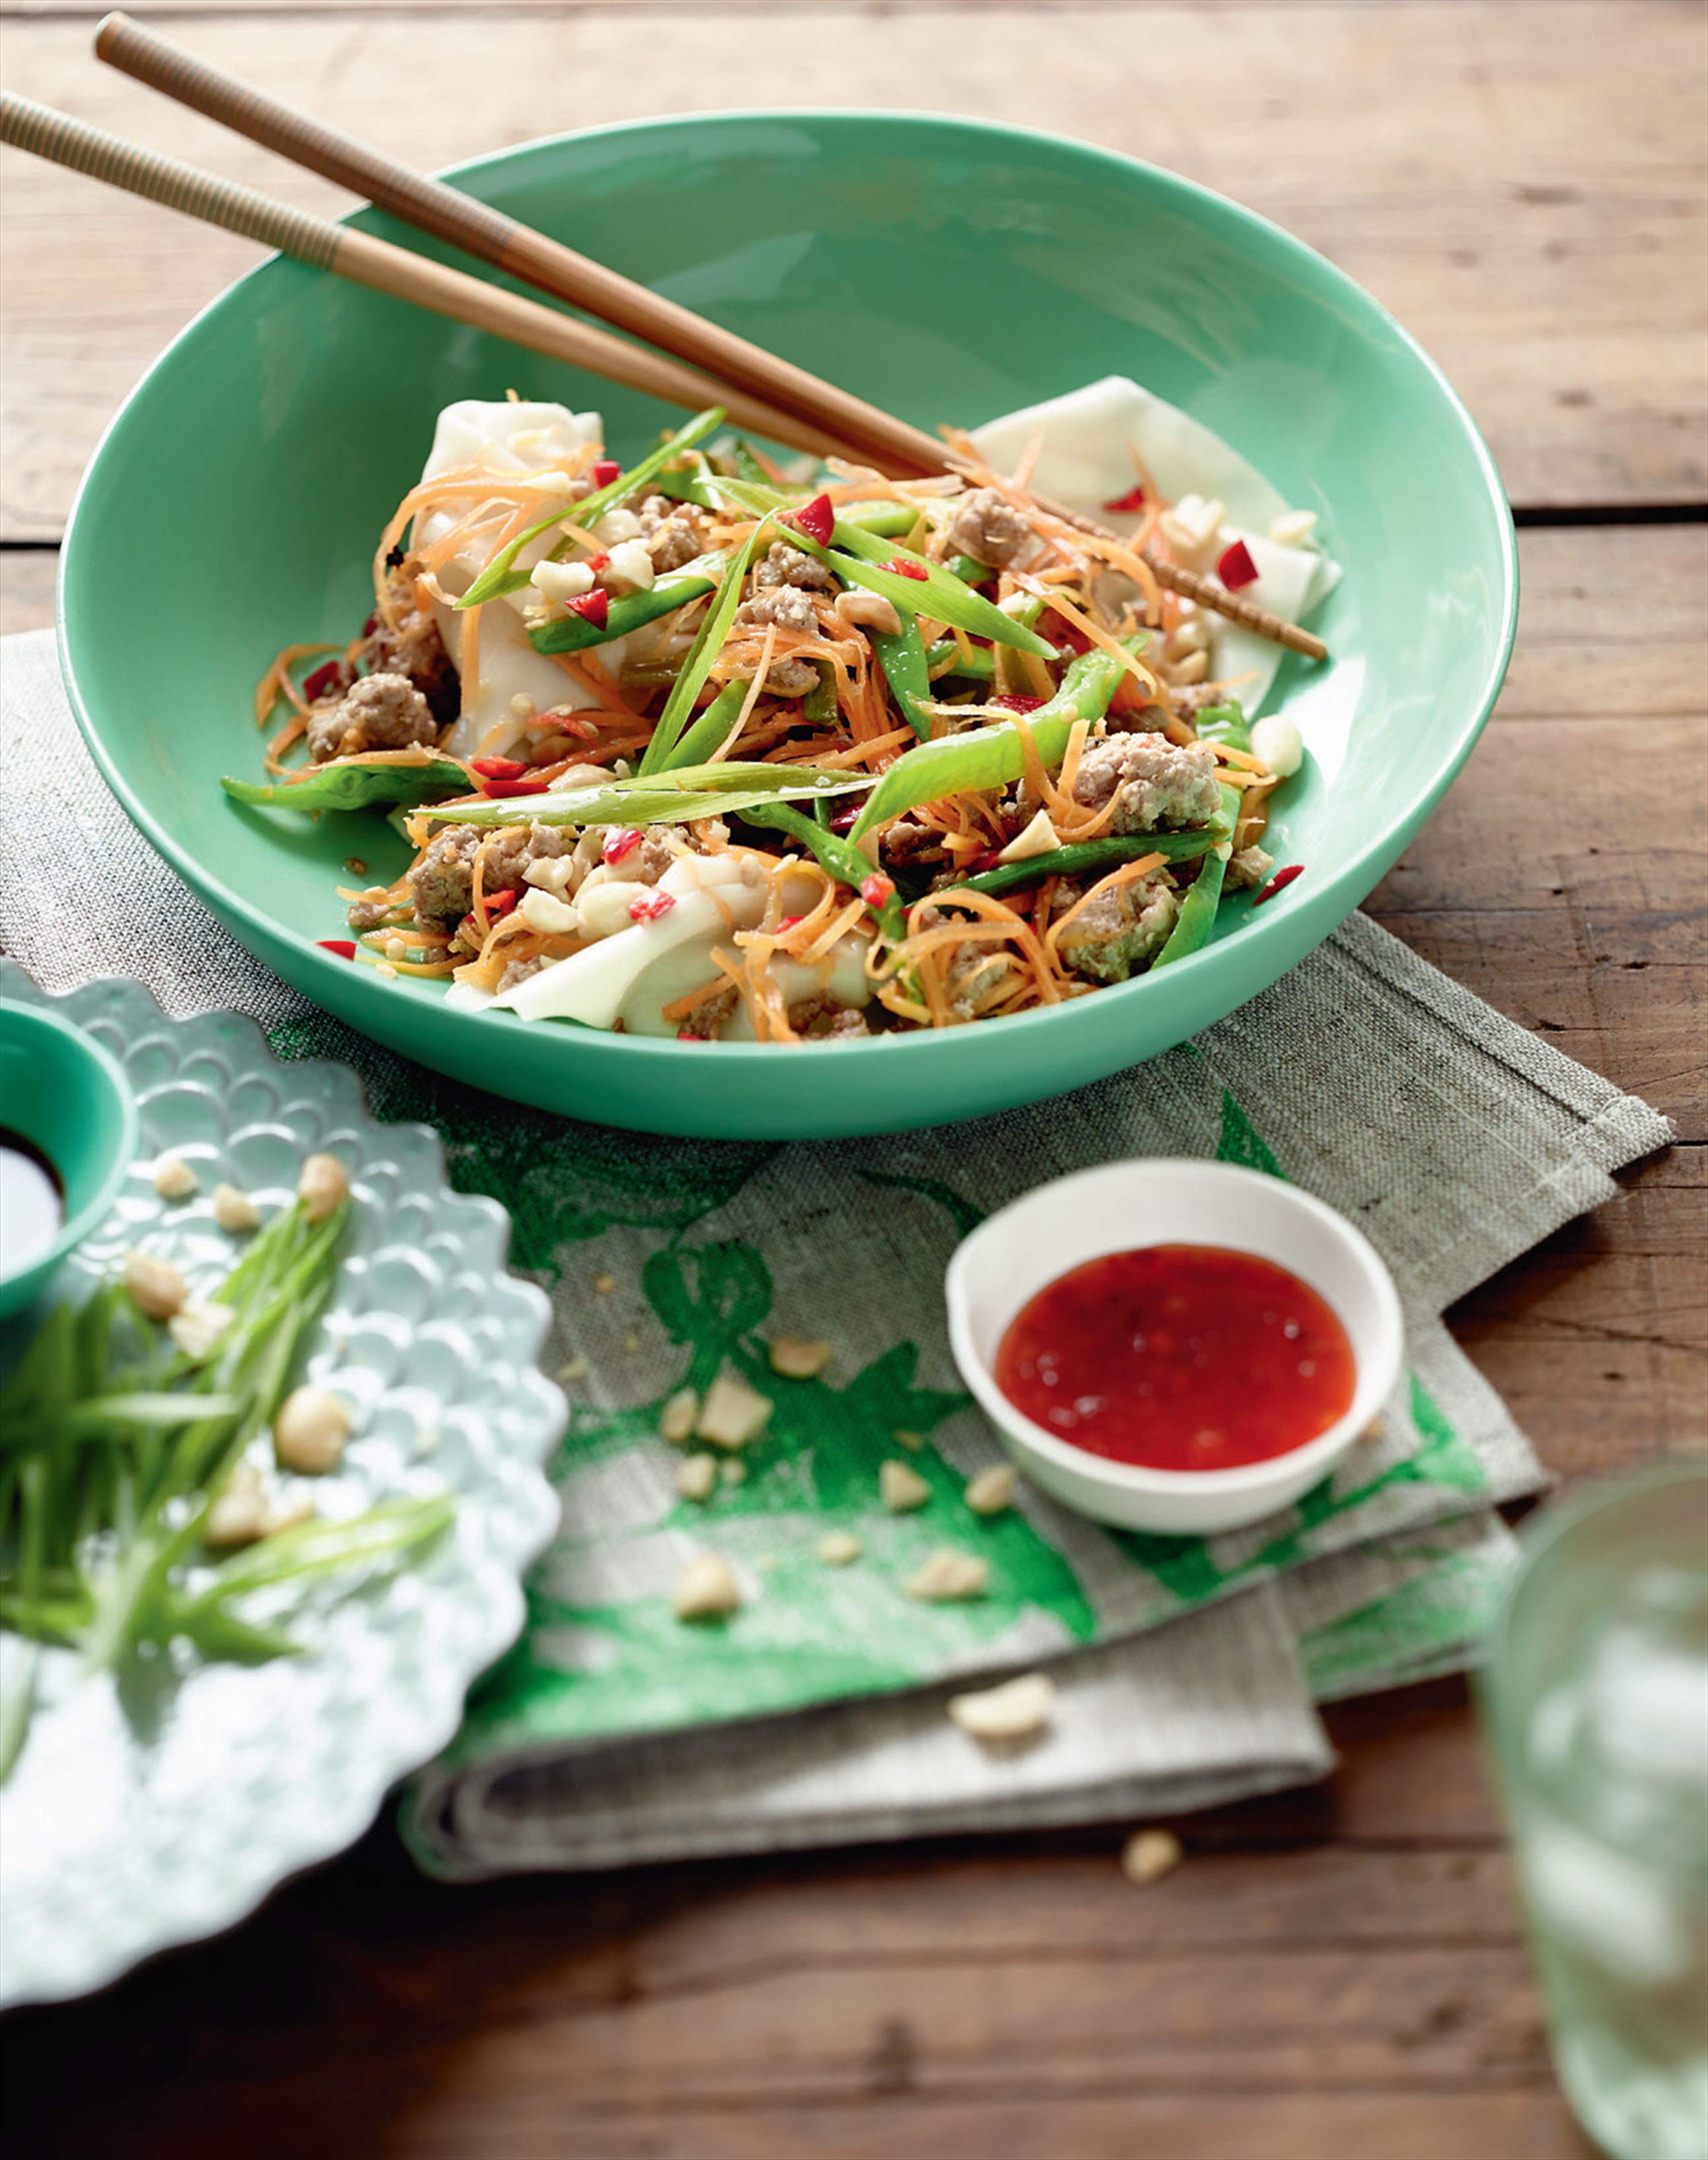 'Exploding' pork dumplings with snow peas